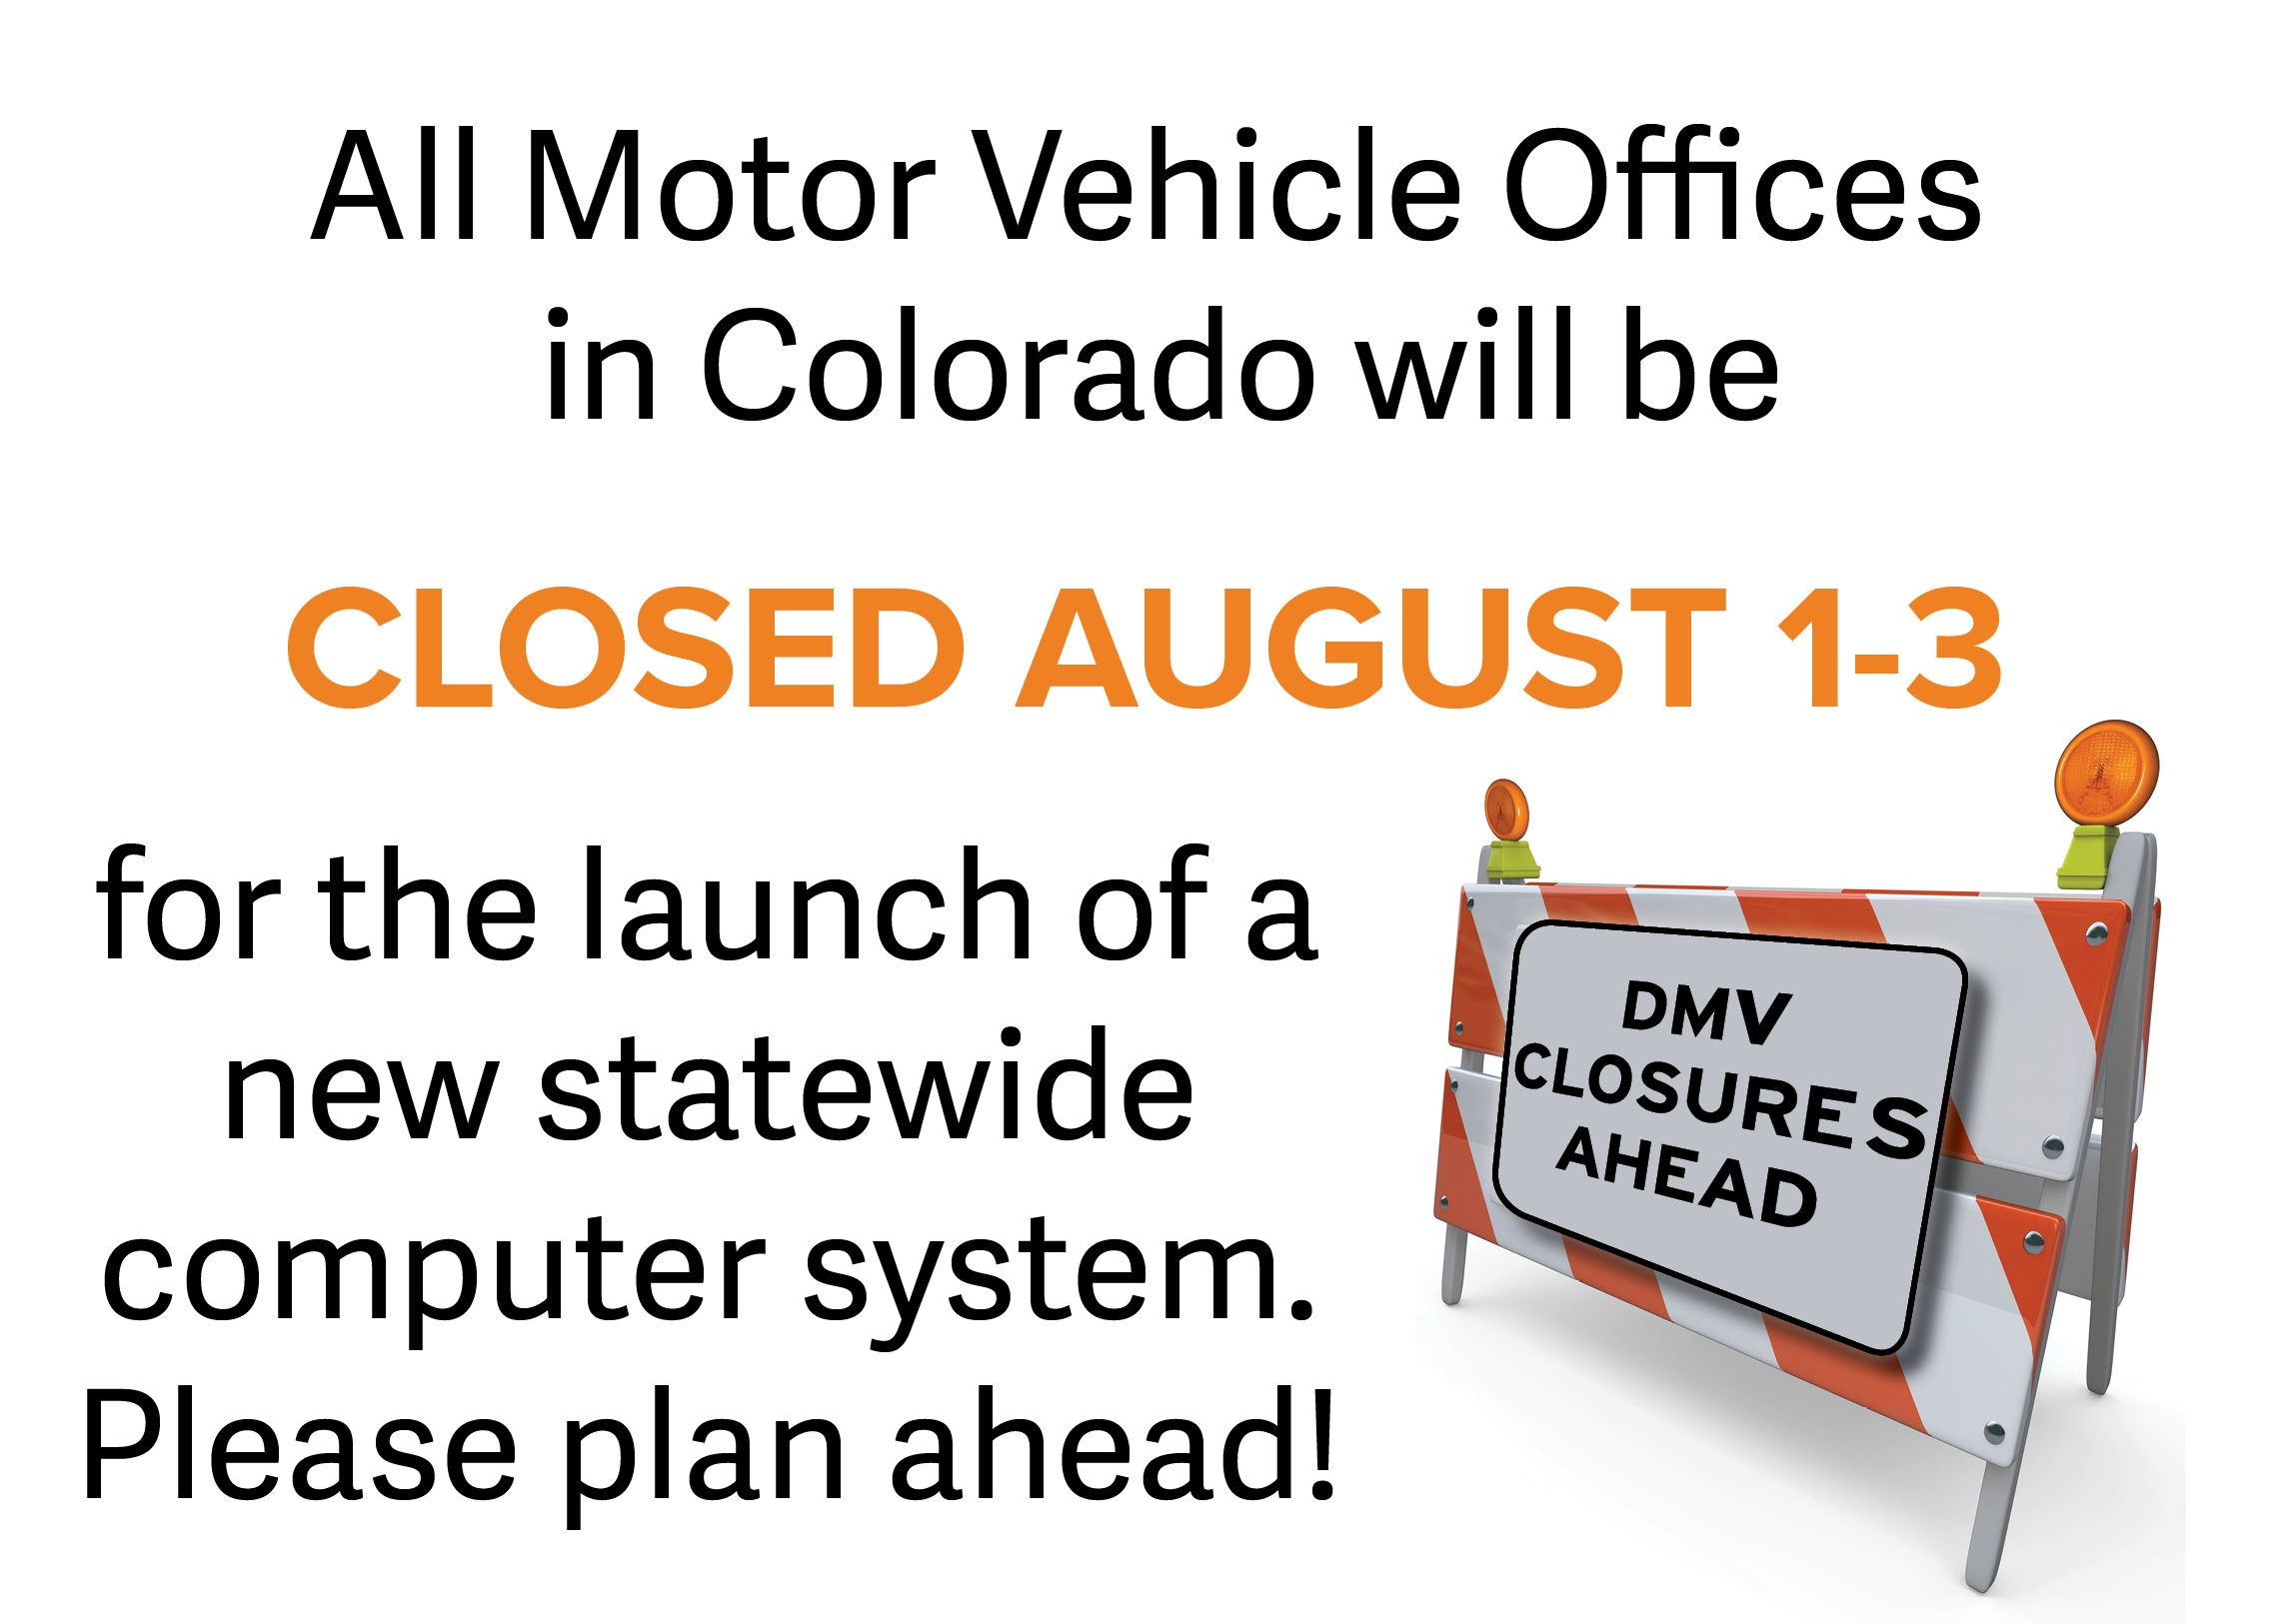 Motor Vehicle Offices will be closed August 1-3 for a statewide computer system upgrade.